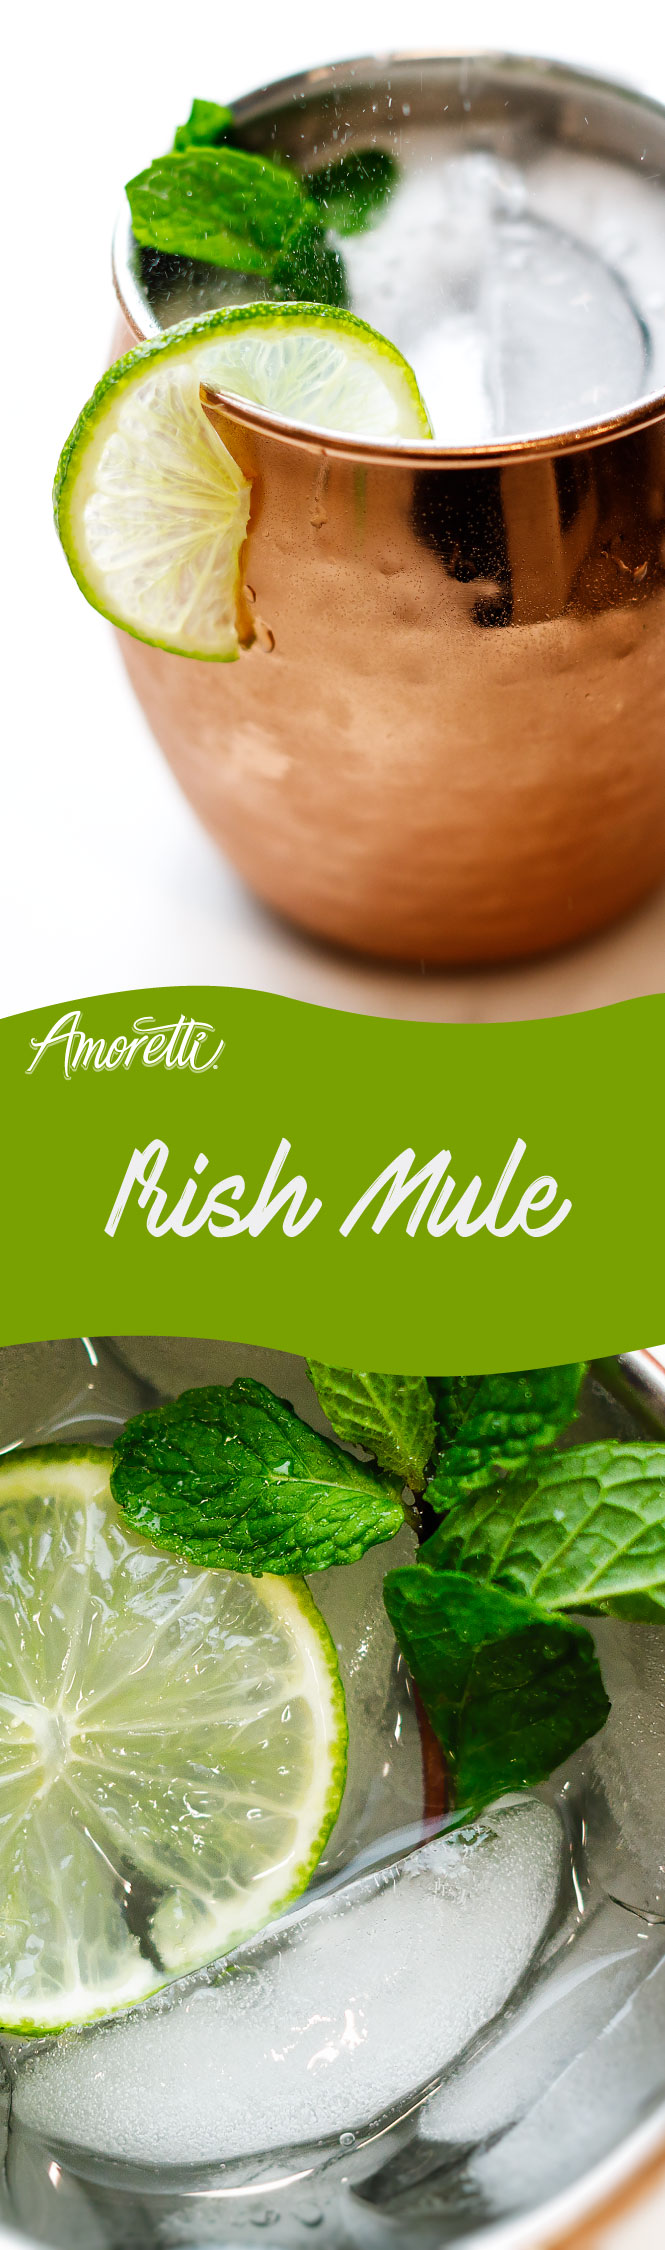 Not a vodka drinker? Try this Irish Mule instead!